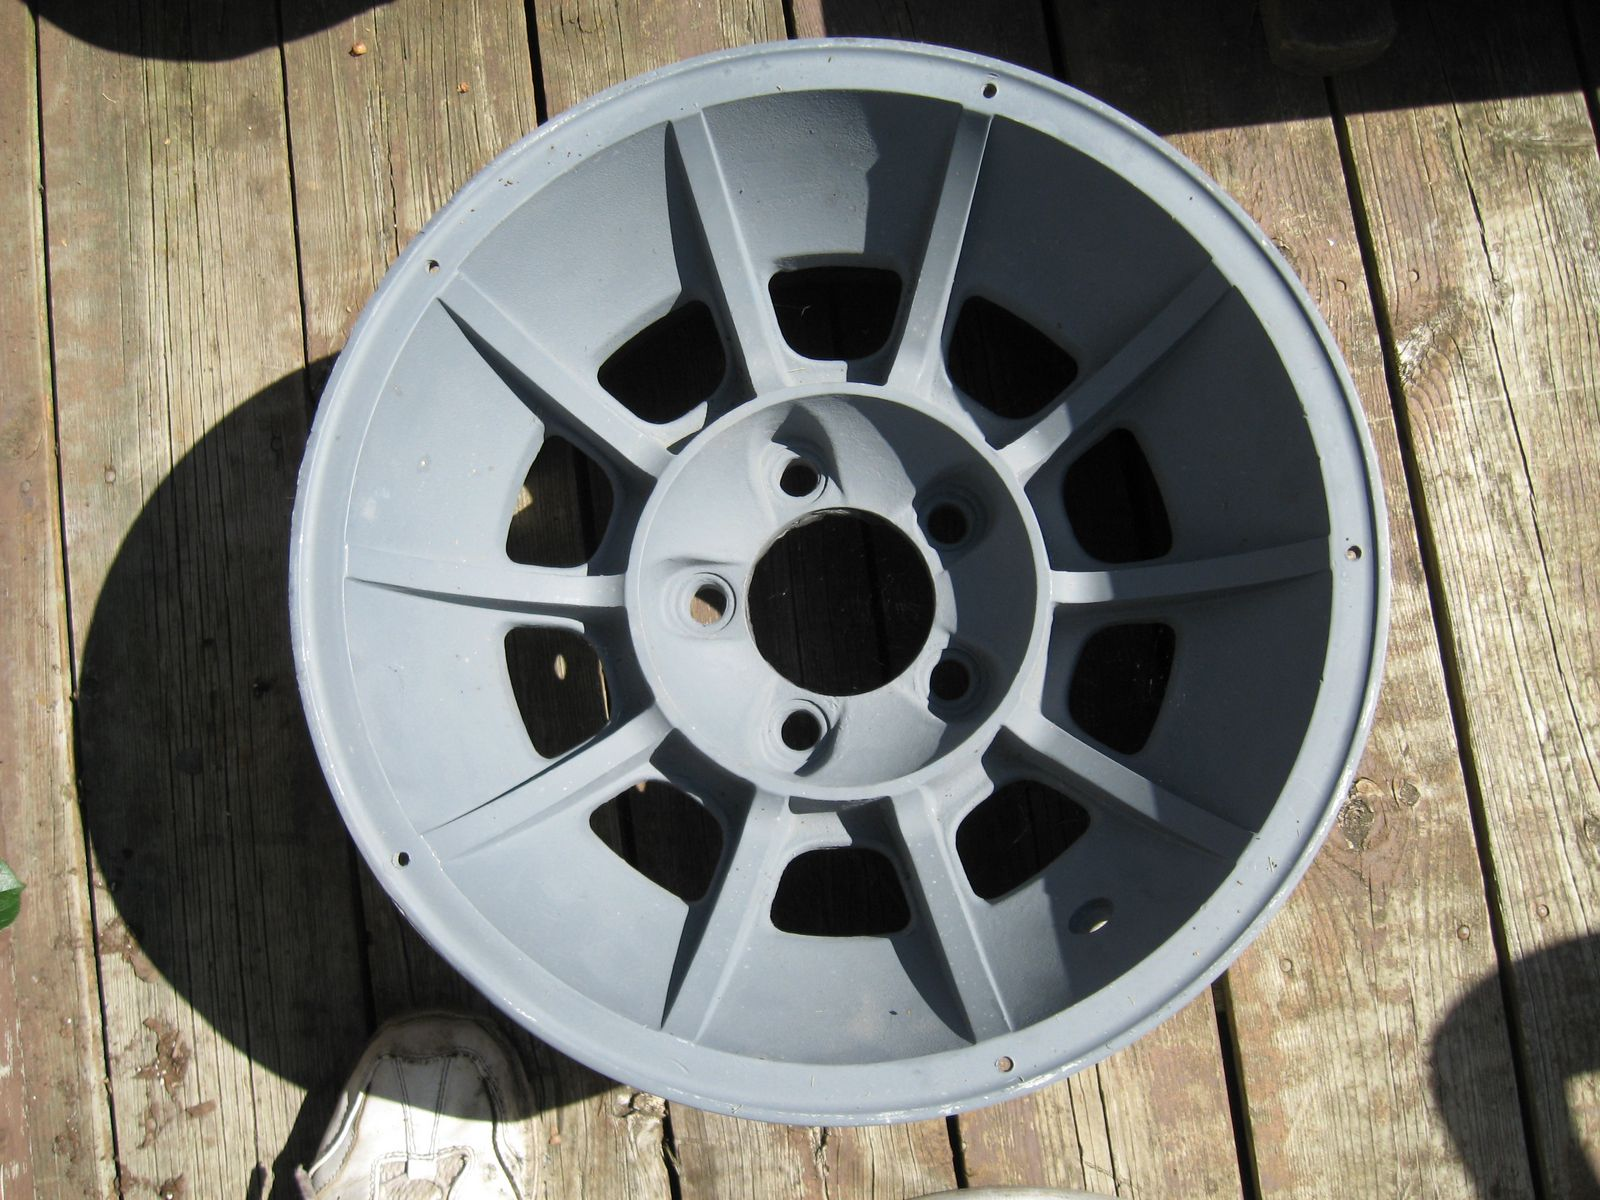 Drag radials for sale -  M T Drag Radials Sale Tn_picture 002 Jpg